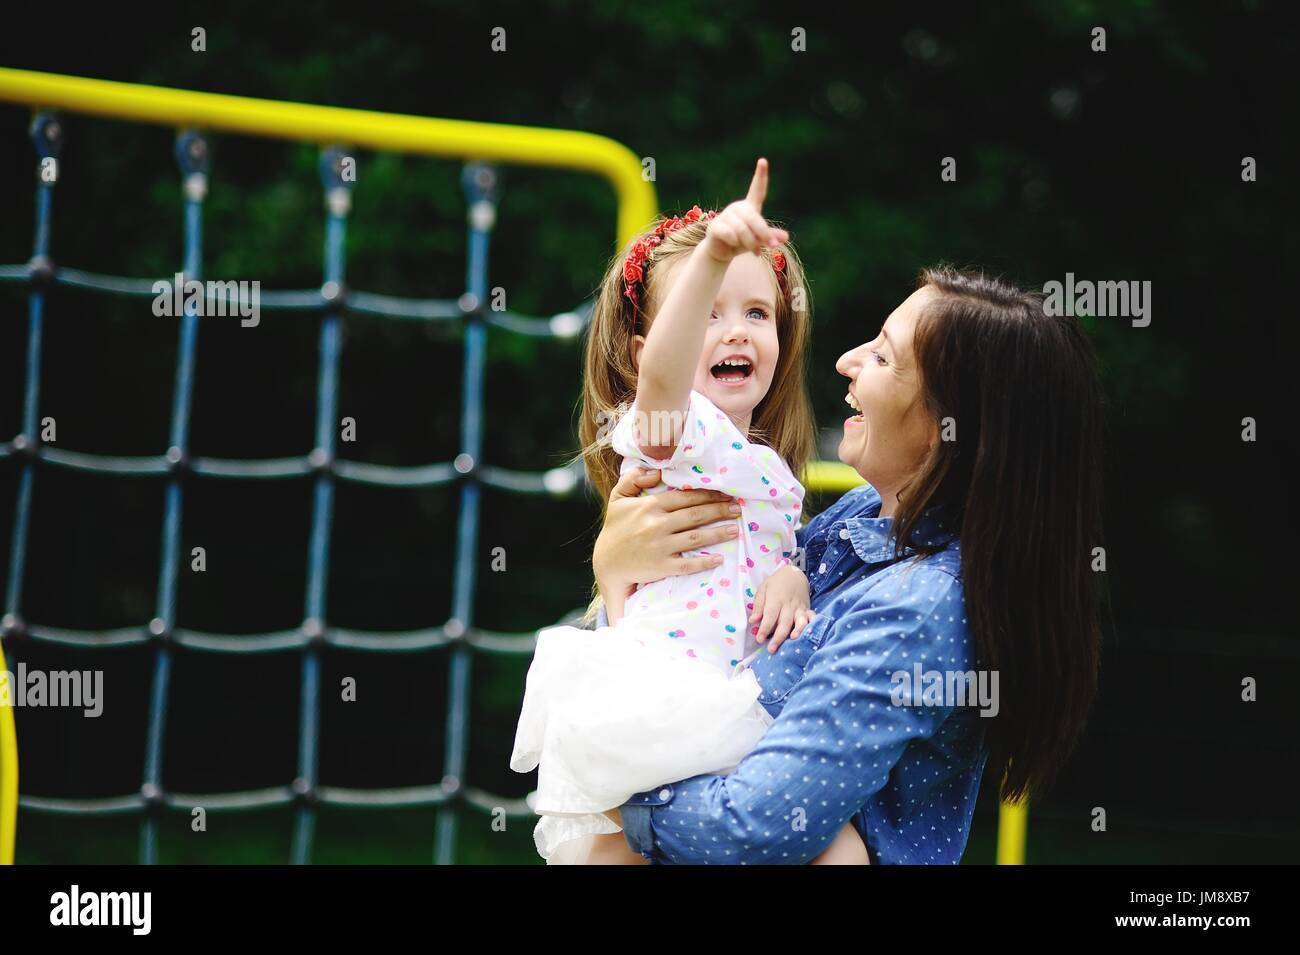 Young mother plays in the playground with the little daughter. The woman holds the baby on hands. Both joyfully laugh. - Stock Image